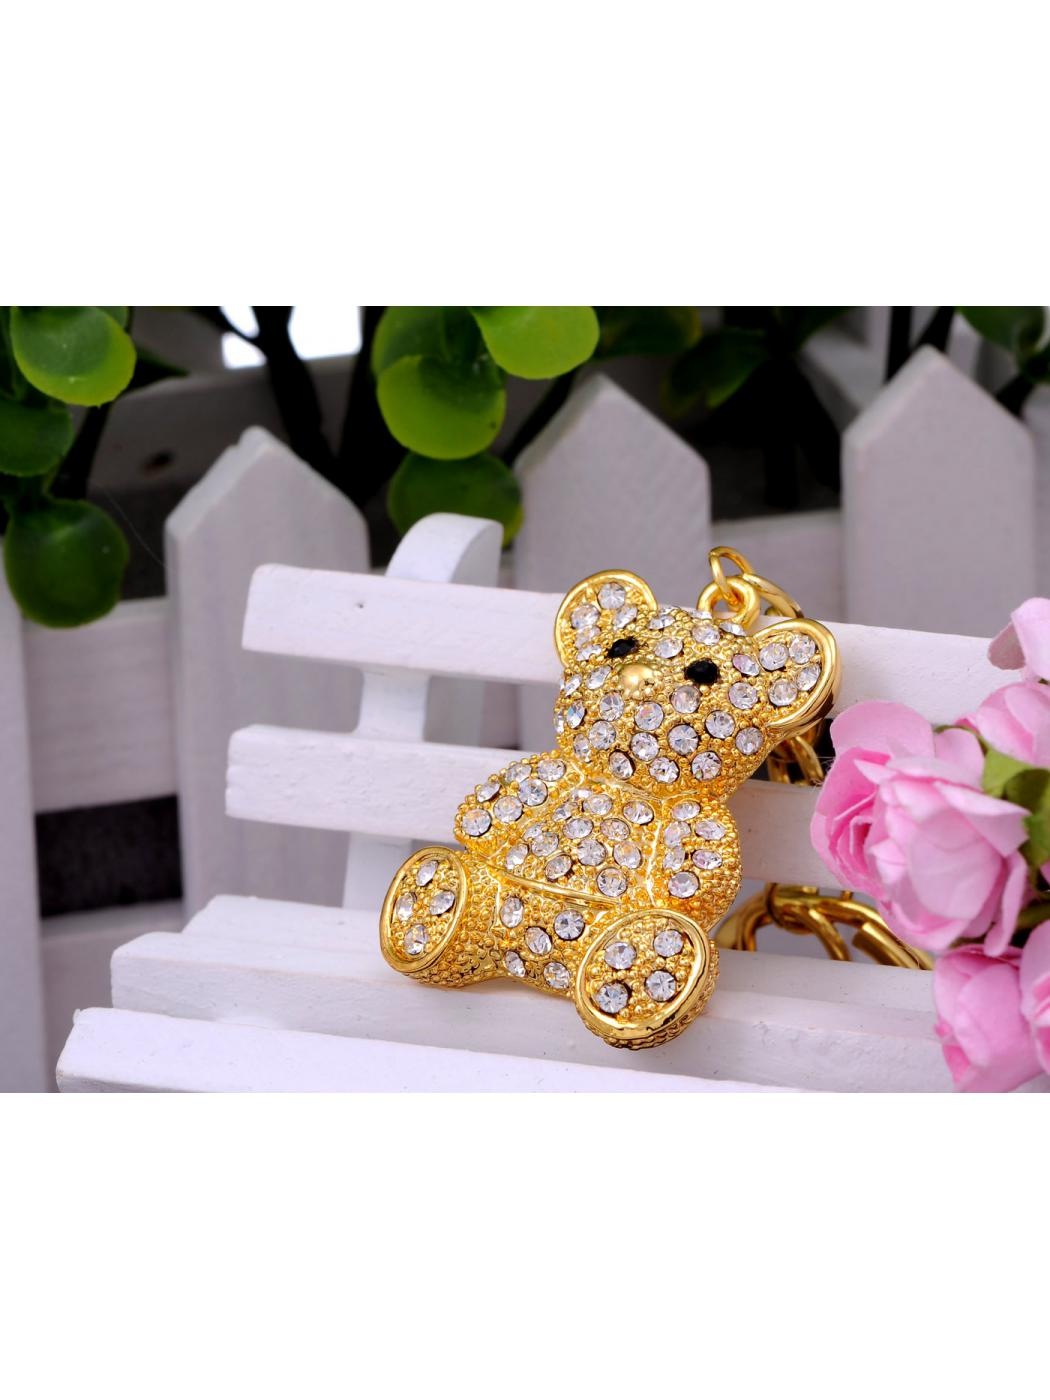 Gold Tone Iced Bling Crystal Rhinestone Cuddle Teddy Bear Hook Clip Key Chain